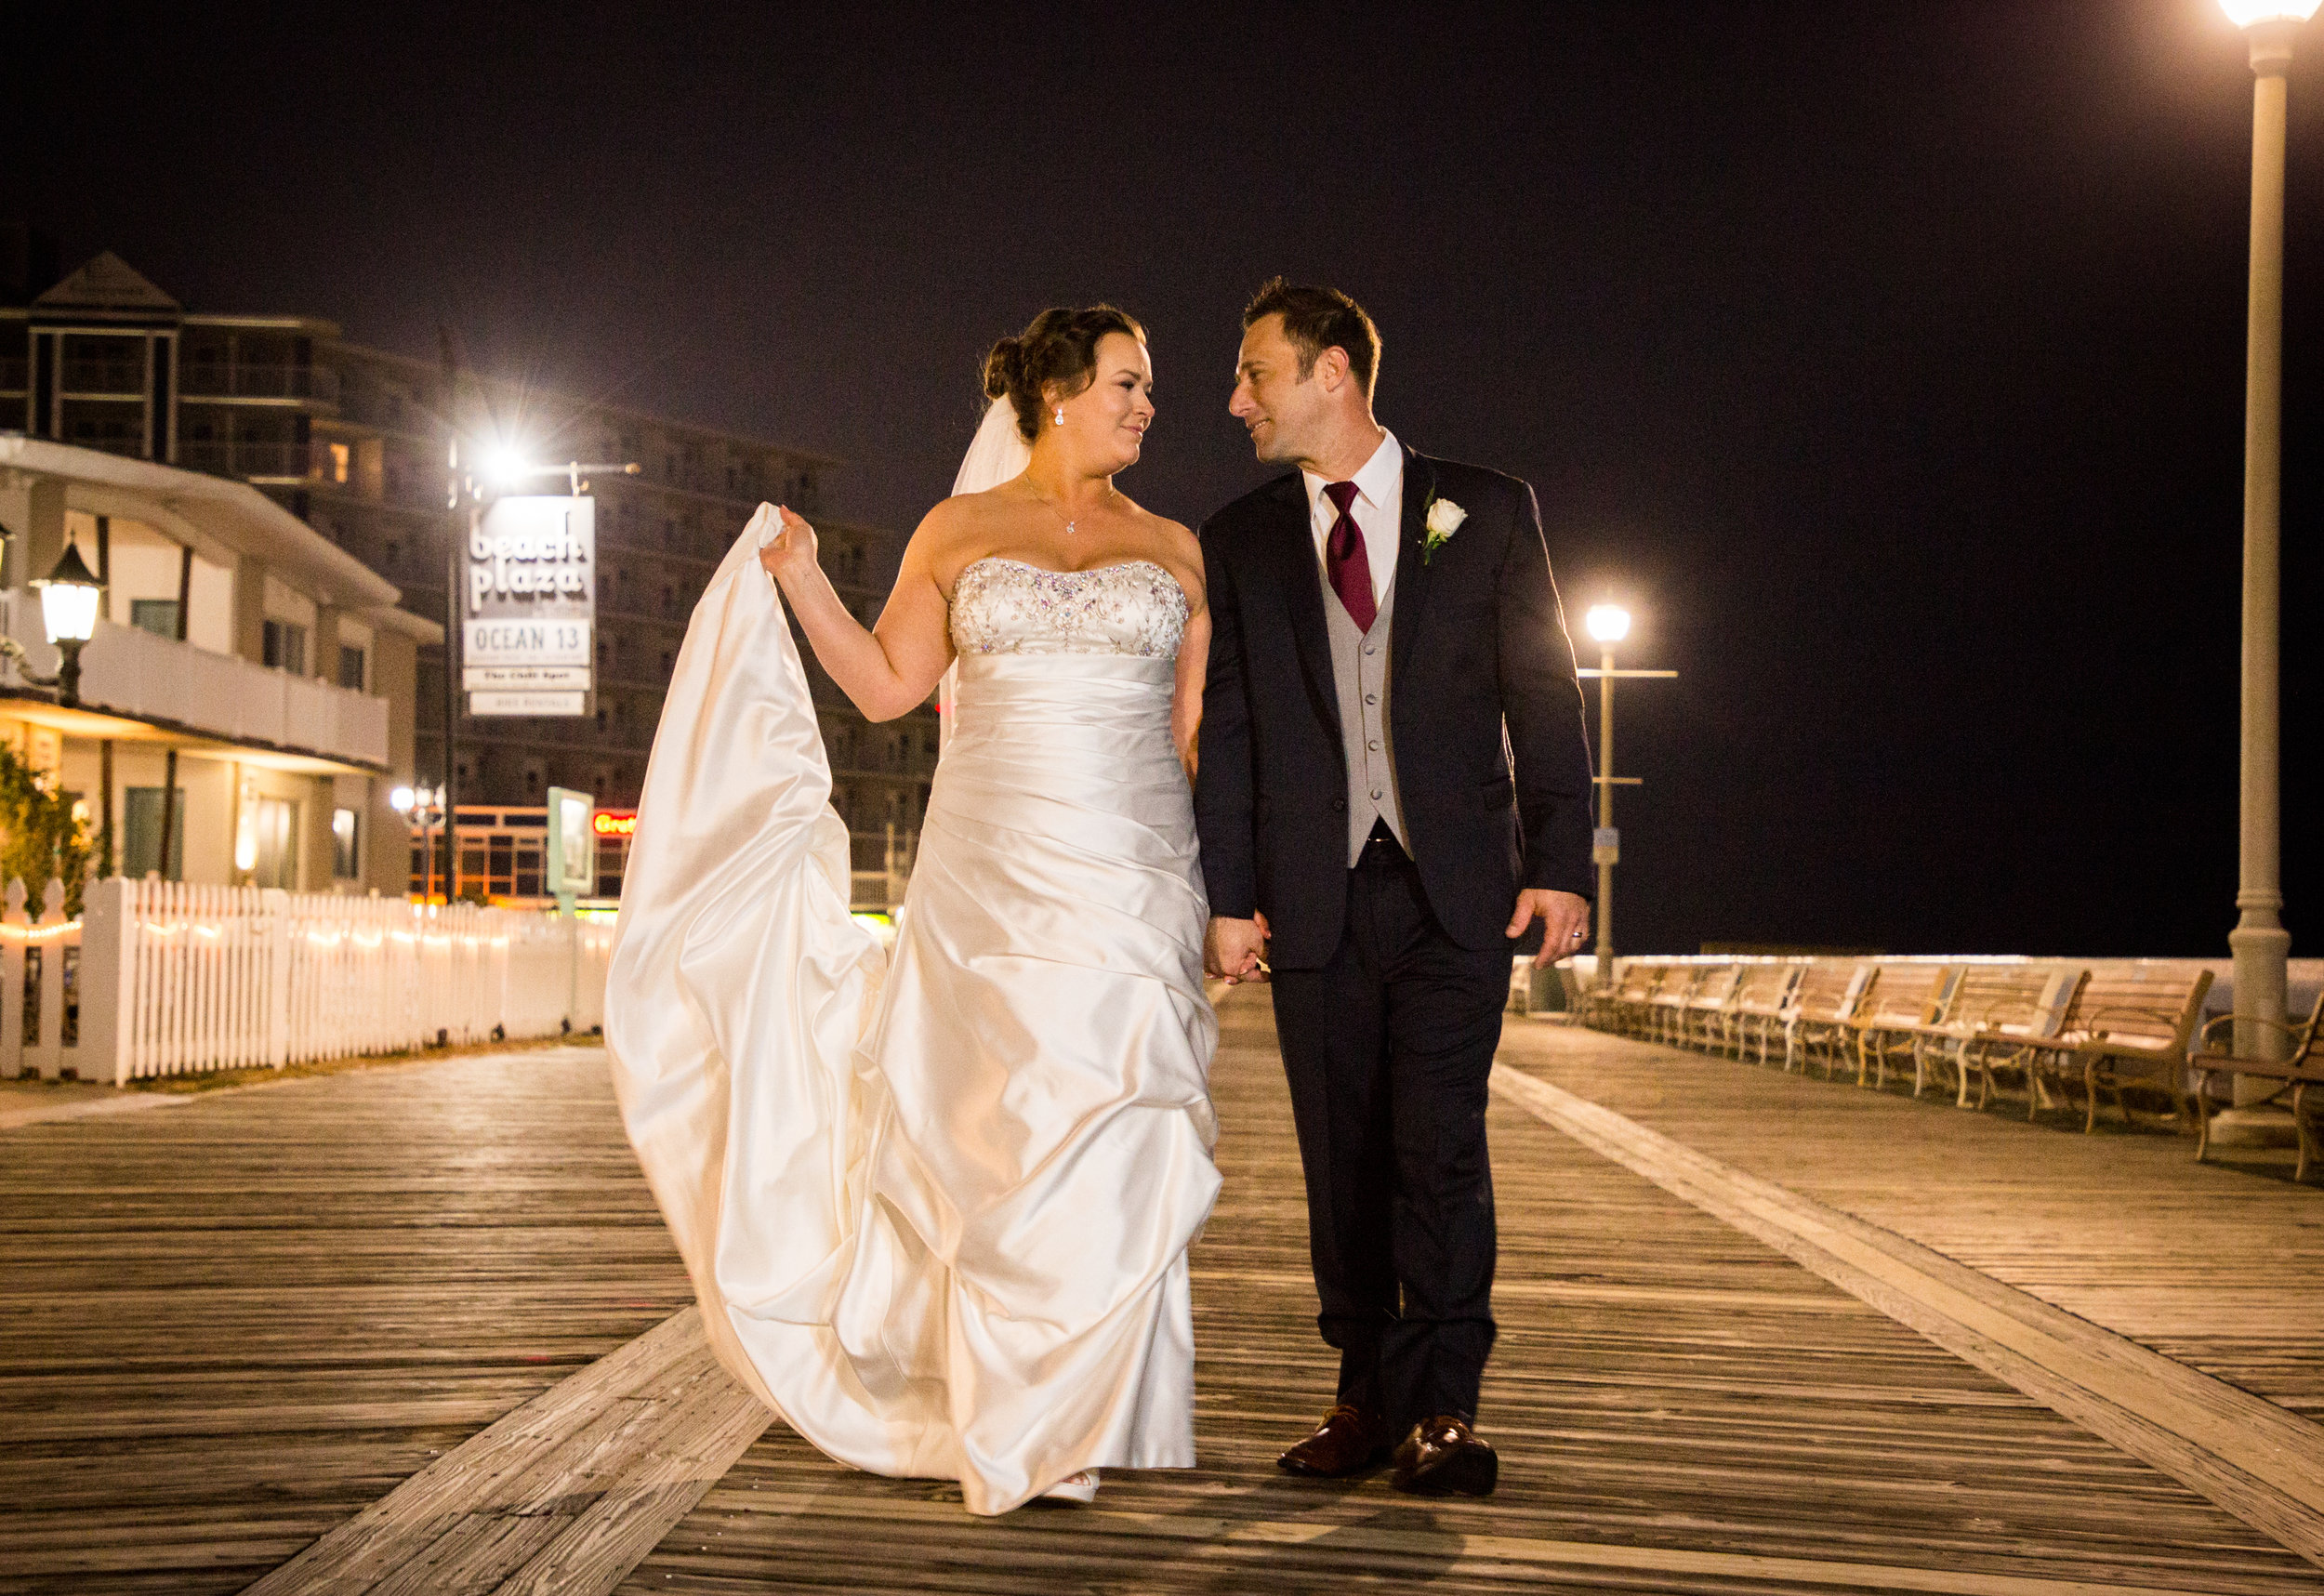 Bride and groom walk down the Ocean City boardwalk at dusk after saying I do.